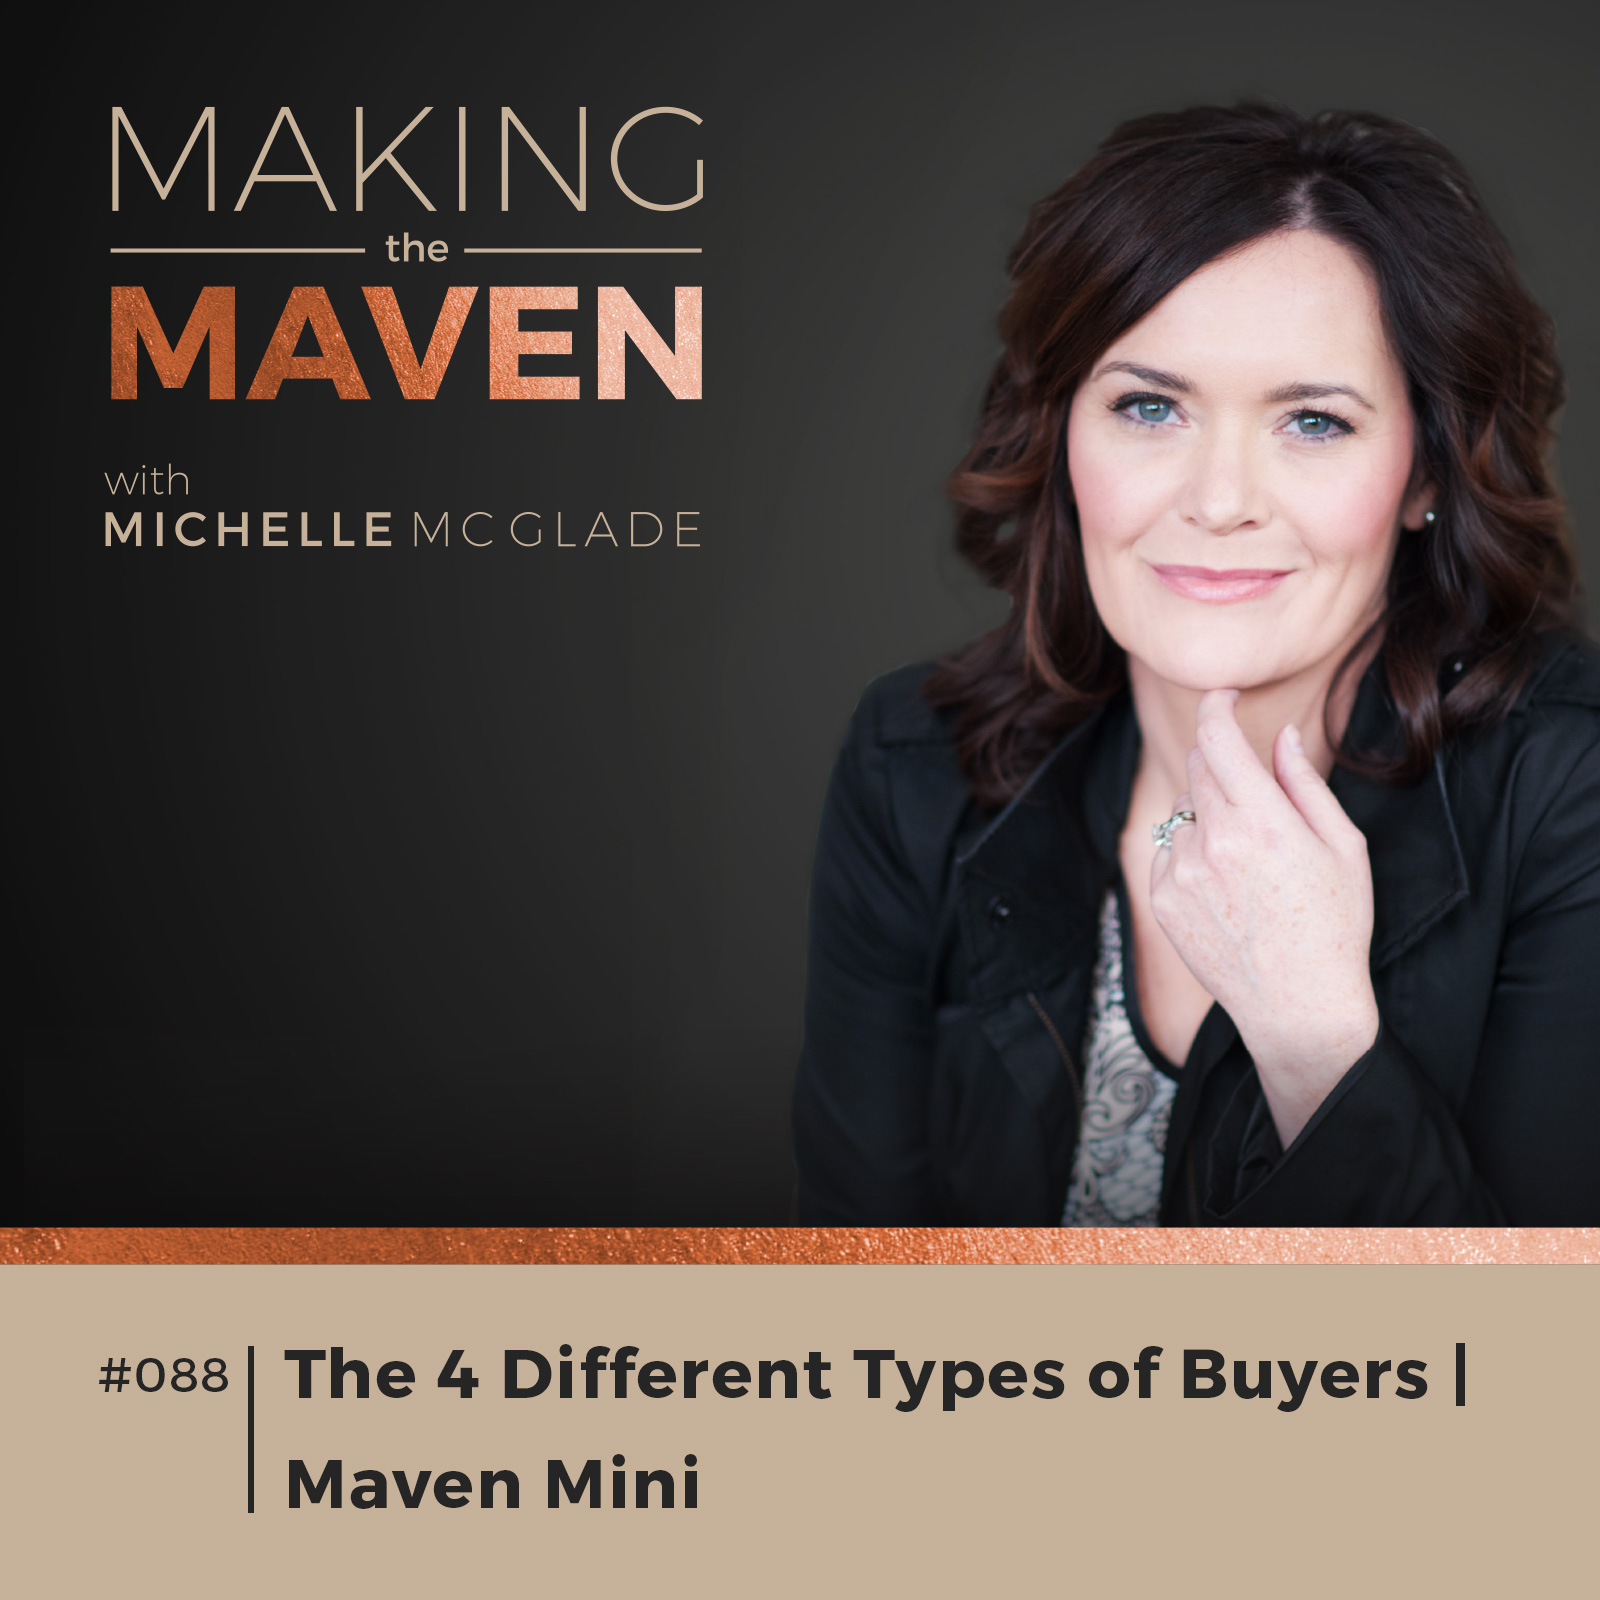 The 4 Different Types of Buyers